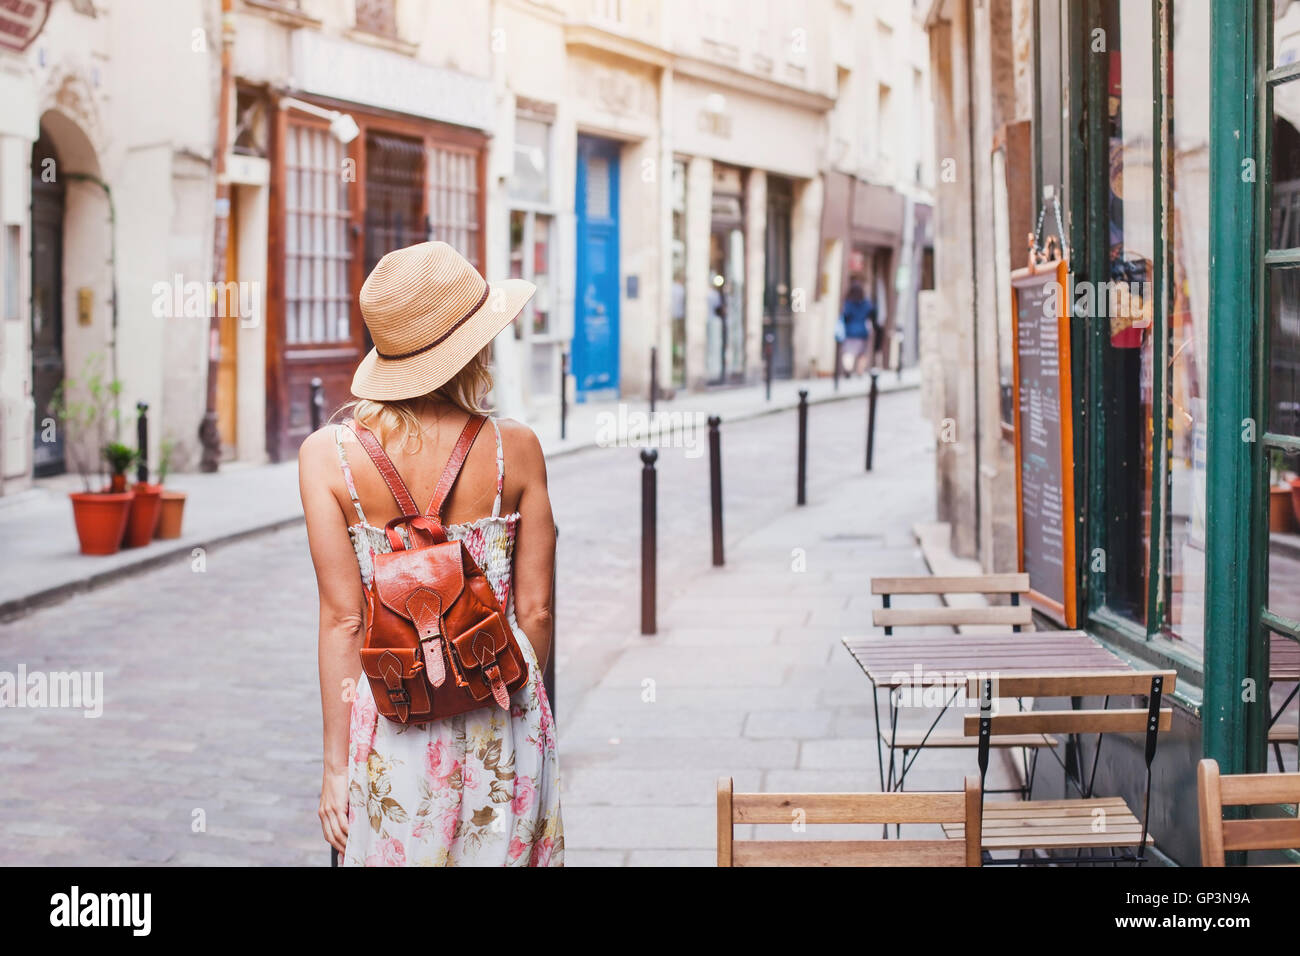 woman tourist on the street, summer fashion style, travel to Europe - Stock Image